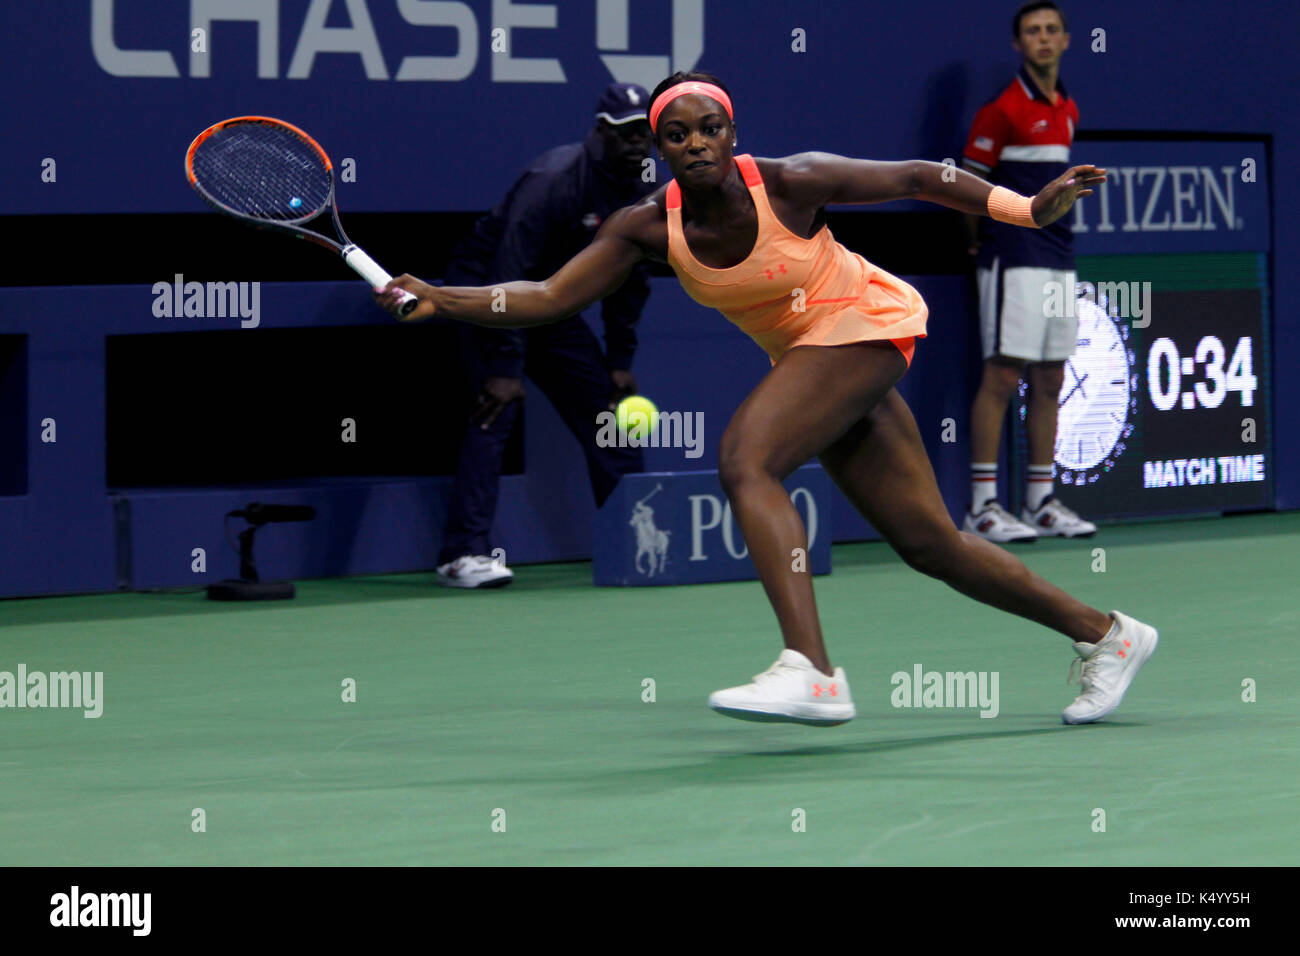 New York, United States. 07th Sep, 2017. US Open Tennis: New York, 7 September, 2017 - Sloane Stephens of the United - Stock Image